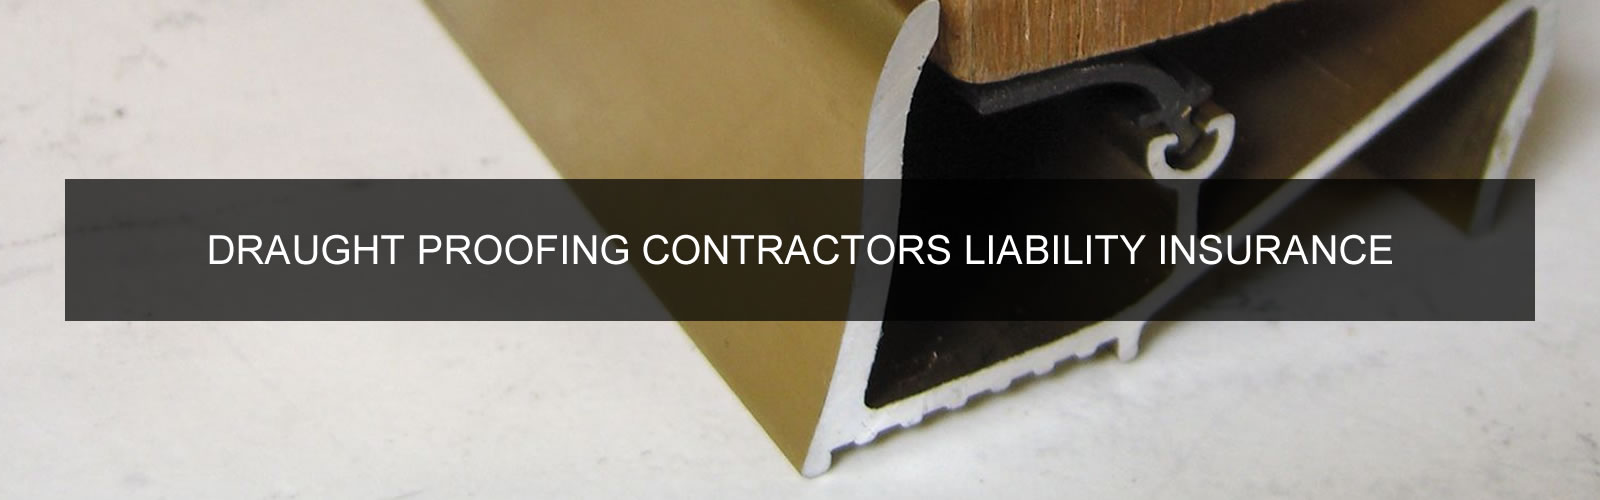 DRAUGHT PROOFING CONTRACTORS LIABILITY INSURANCE